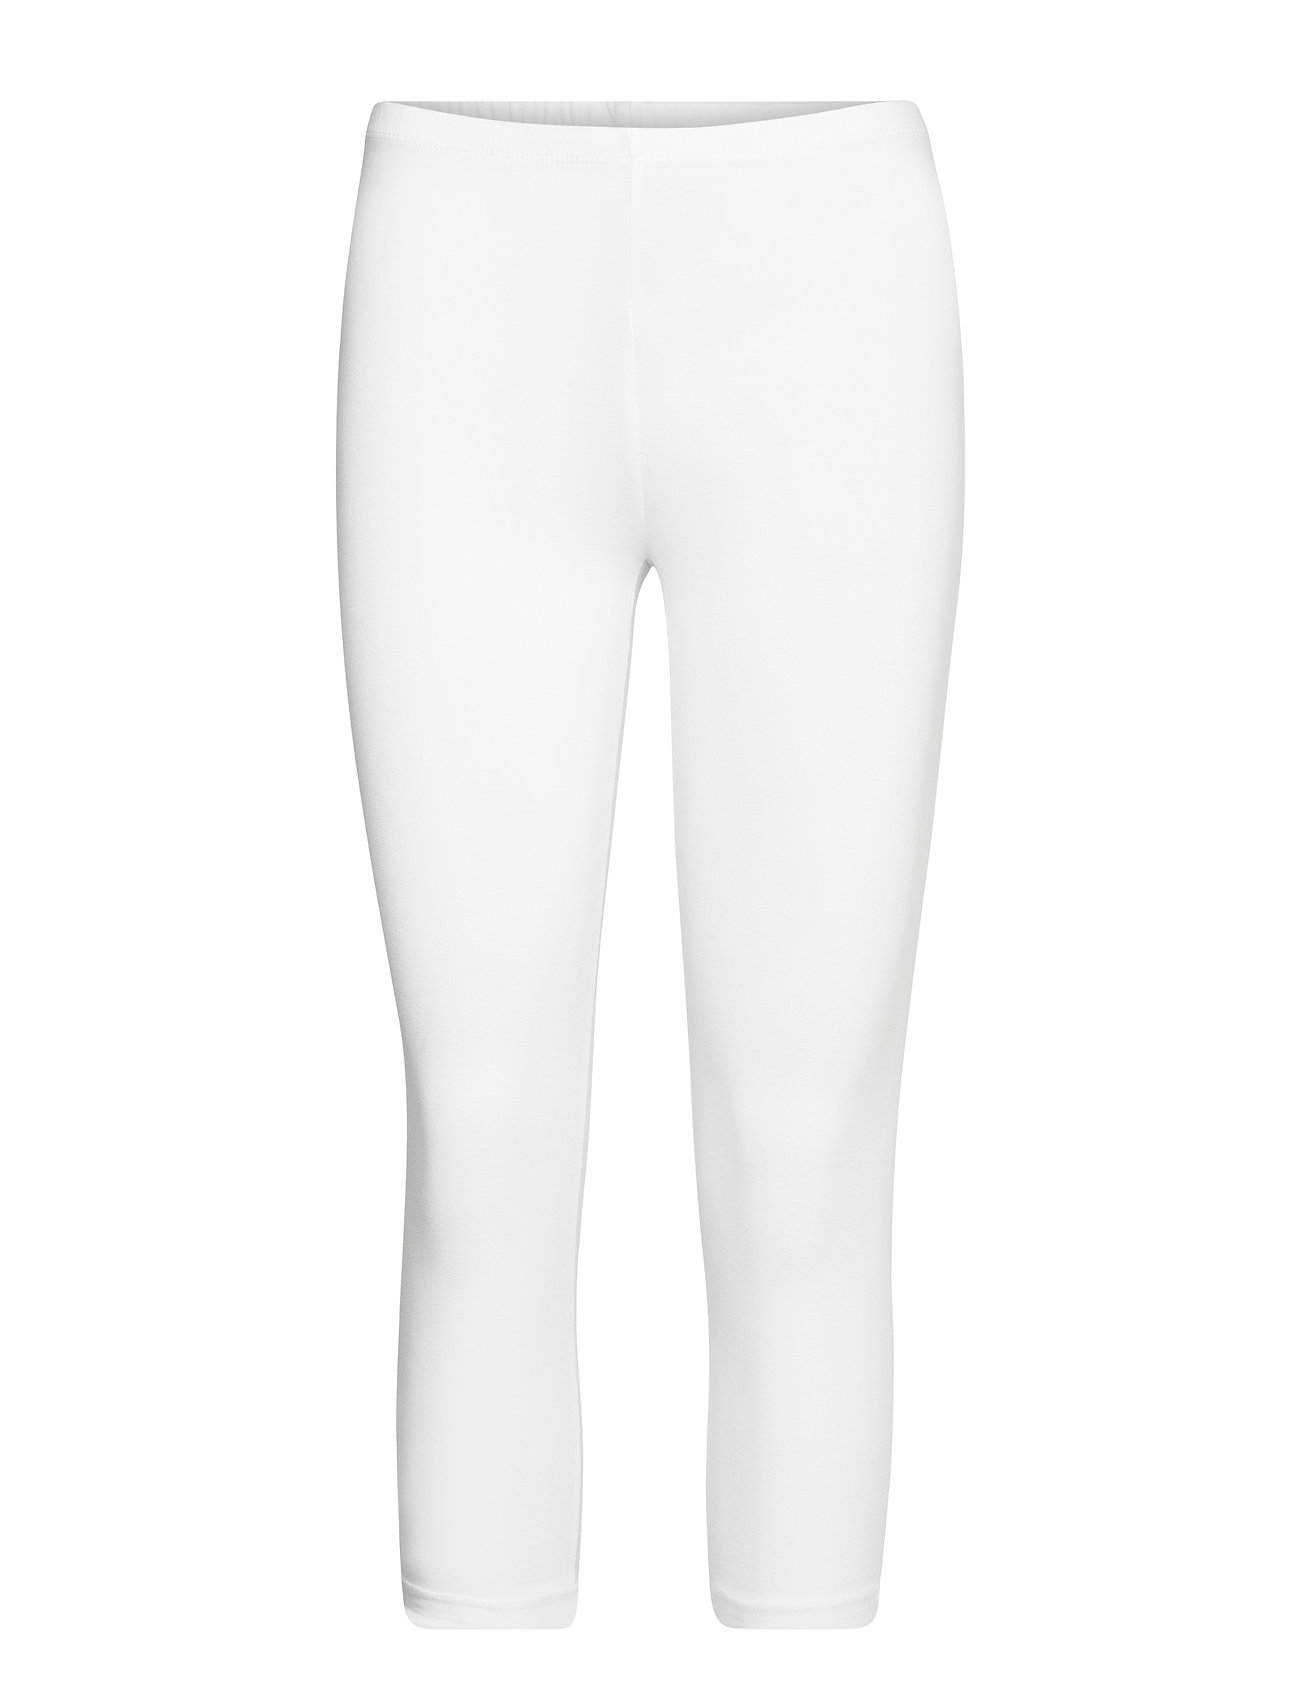 Decoy Dame capri leggings - WHITE